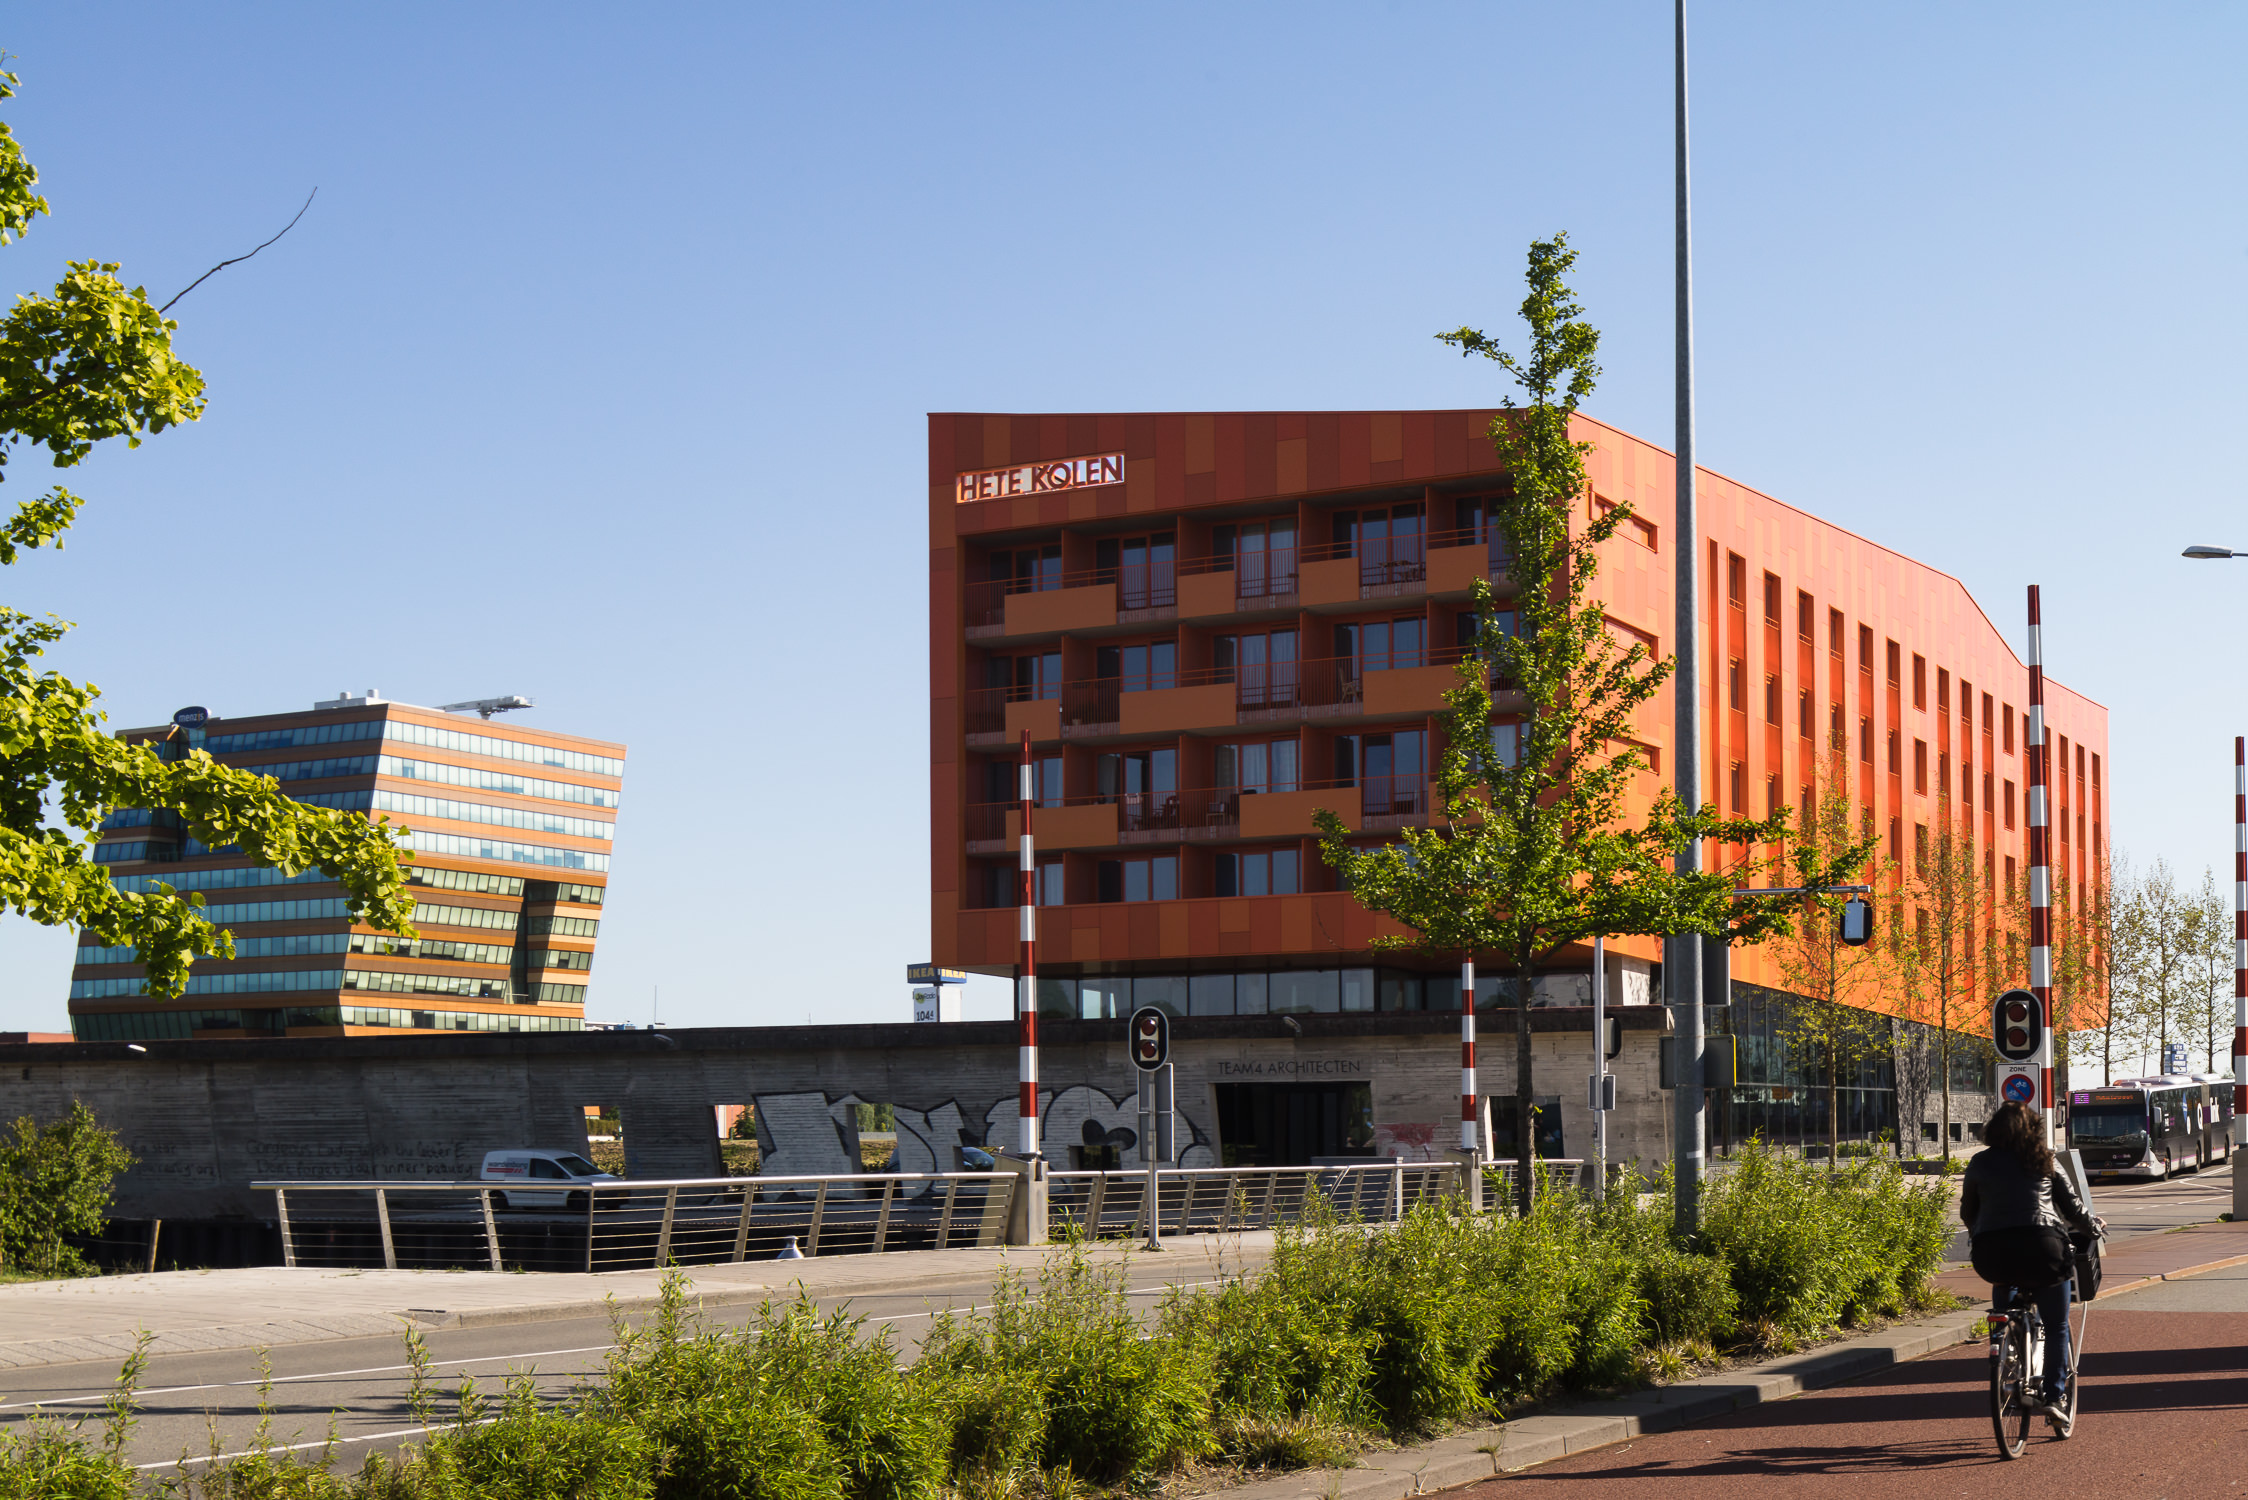 architectural photography in groningen, netherlands by mark hadden of amsterdam